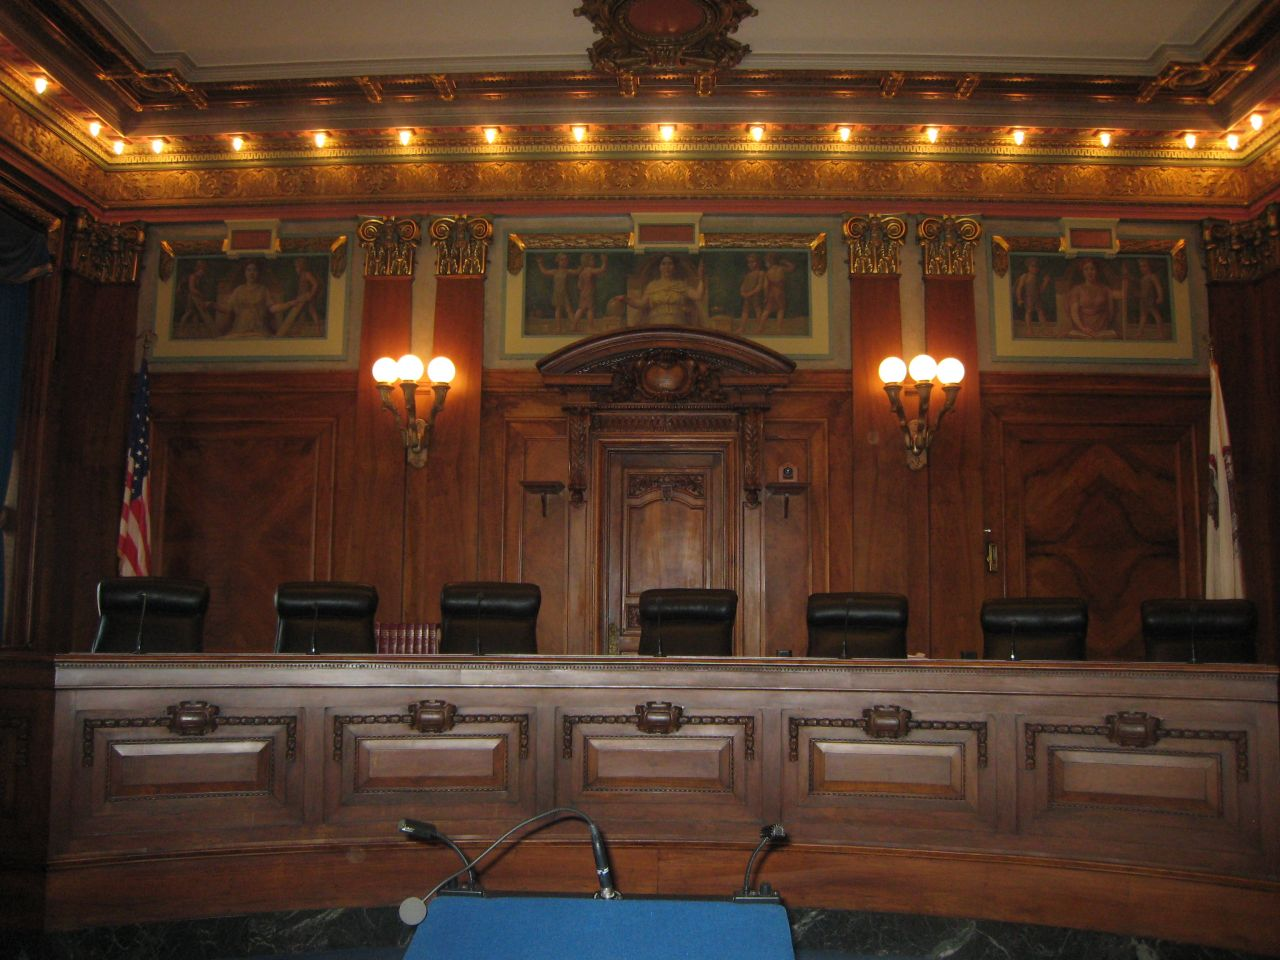 The seven Illinois Supreme Court justices preside in this courtroom